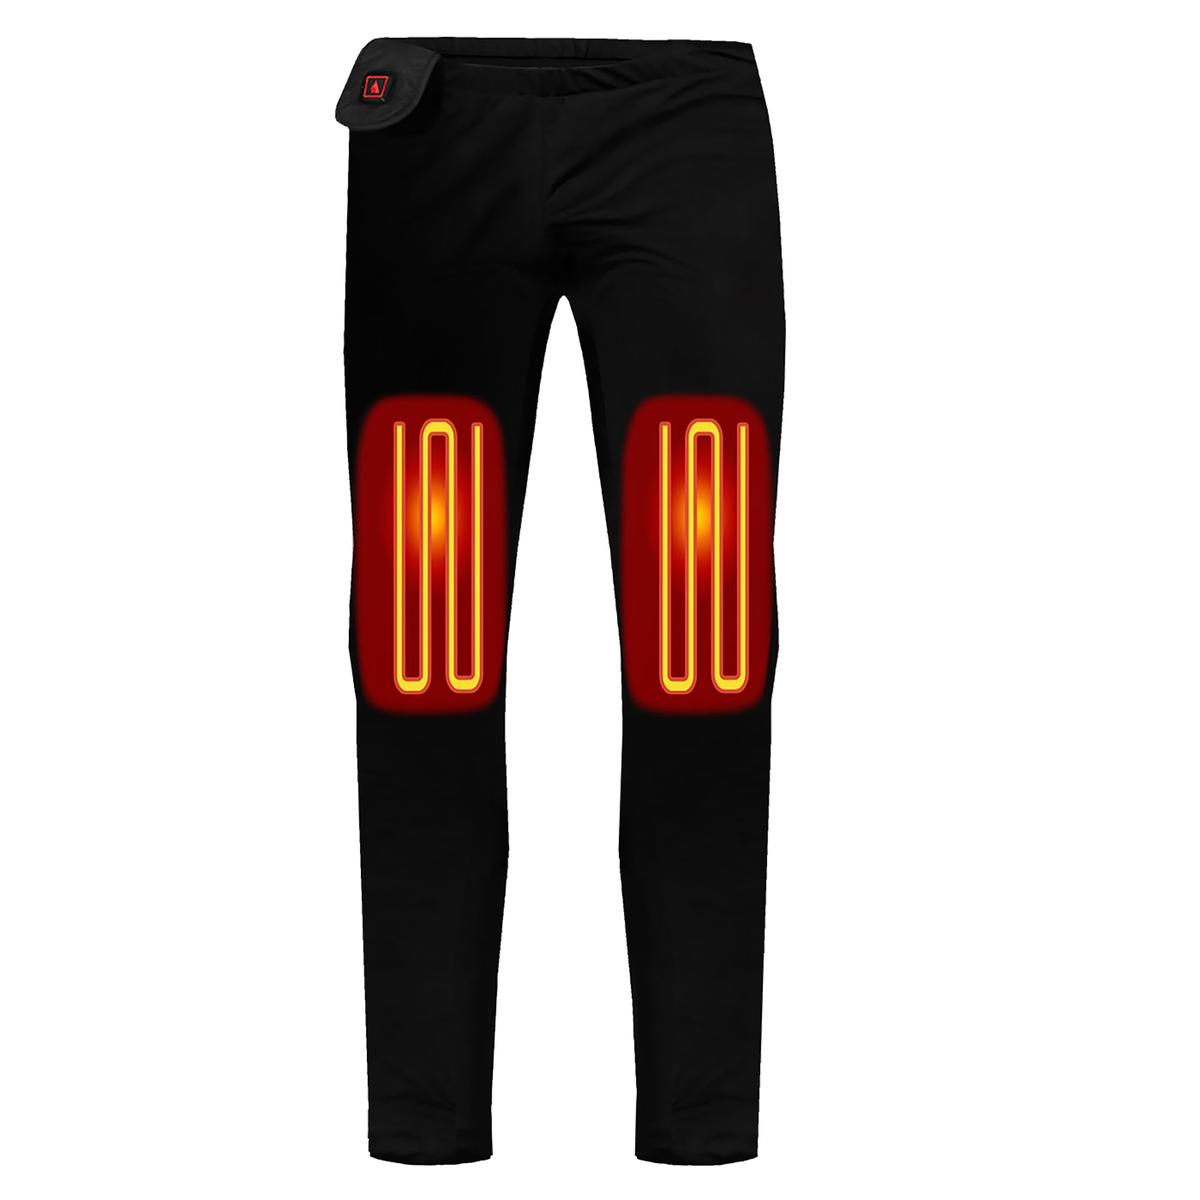 947fb42e1f9dd ActionHeat 5V Heated Base Layer Pants - Women's - The Warming Store